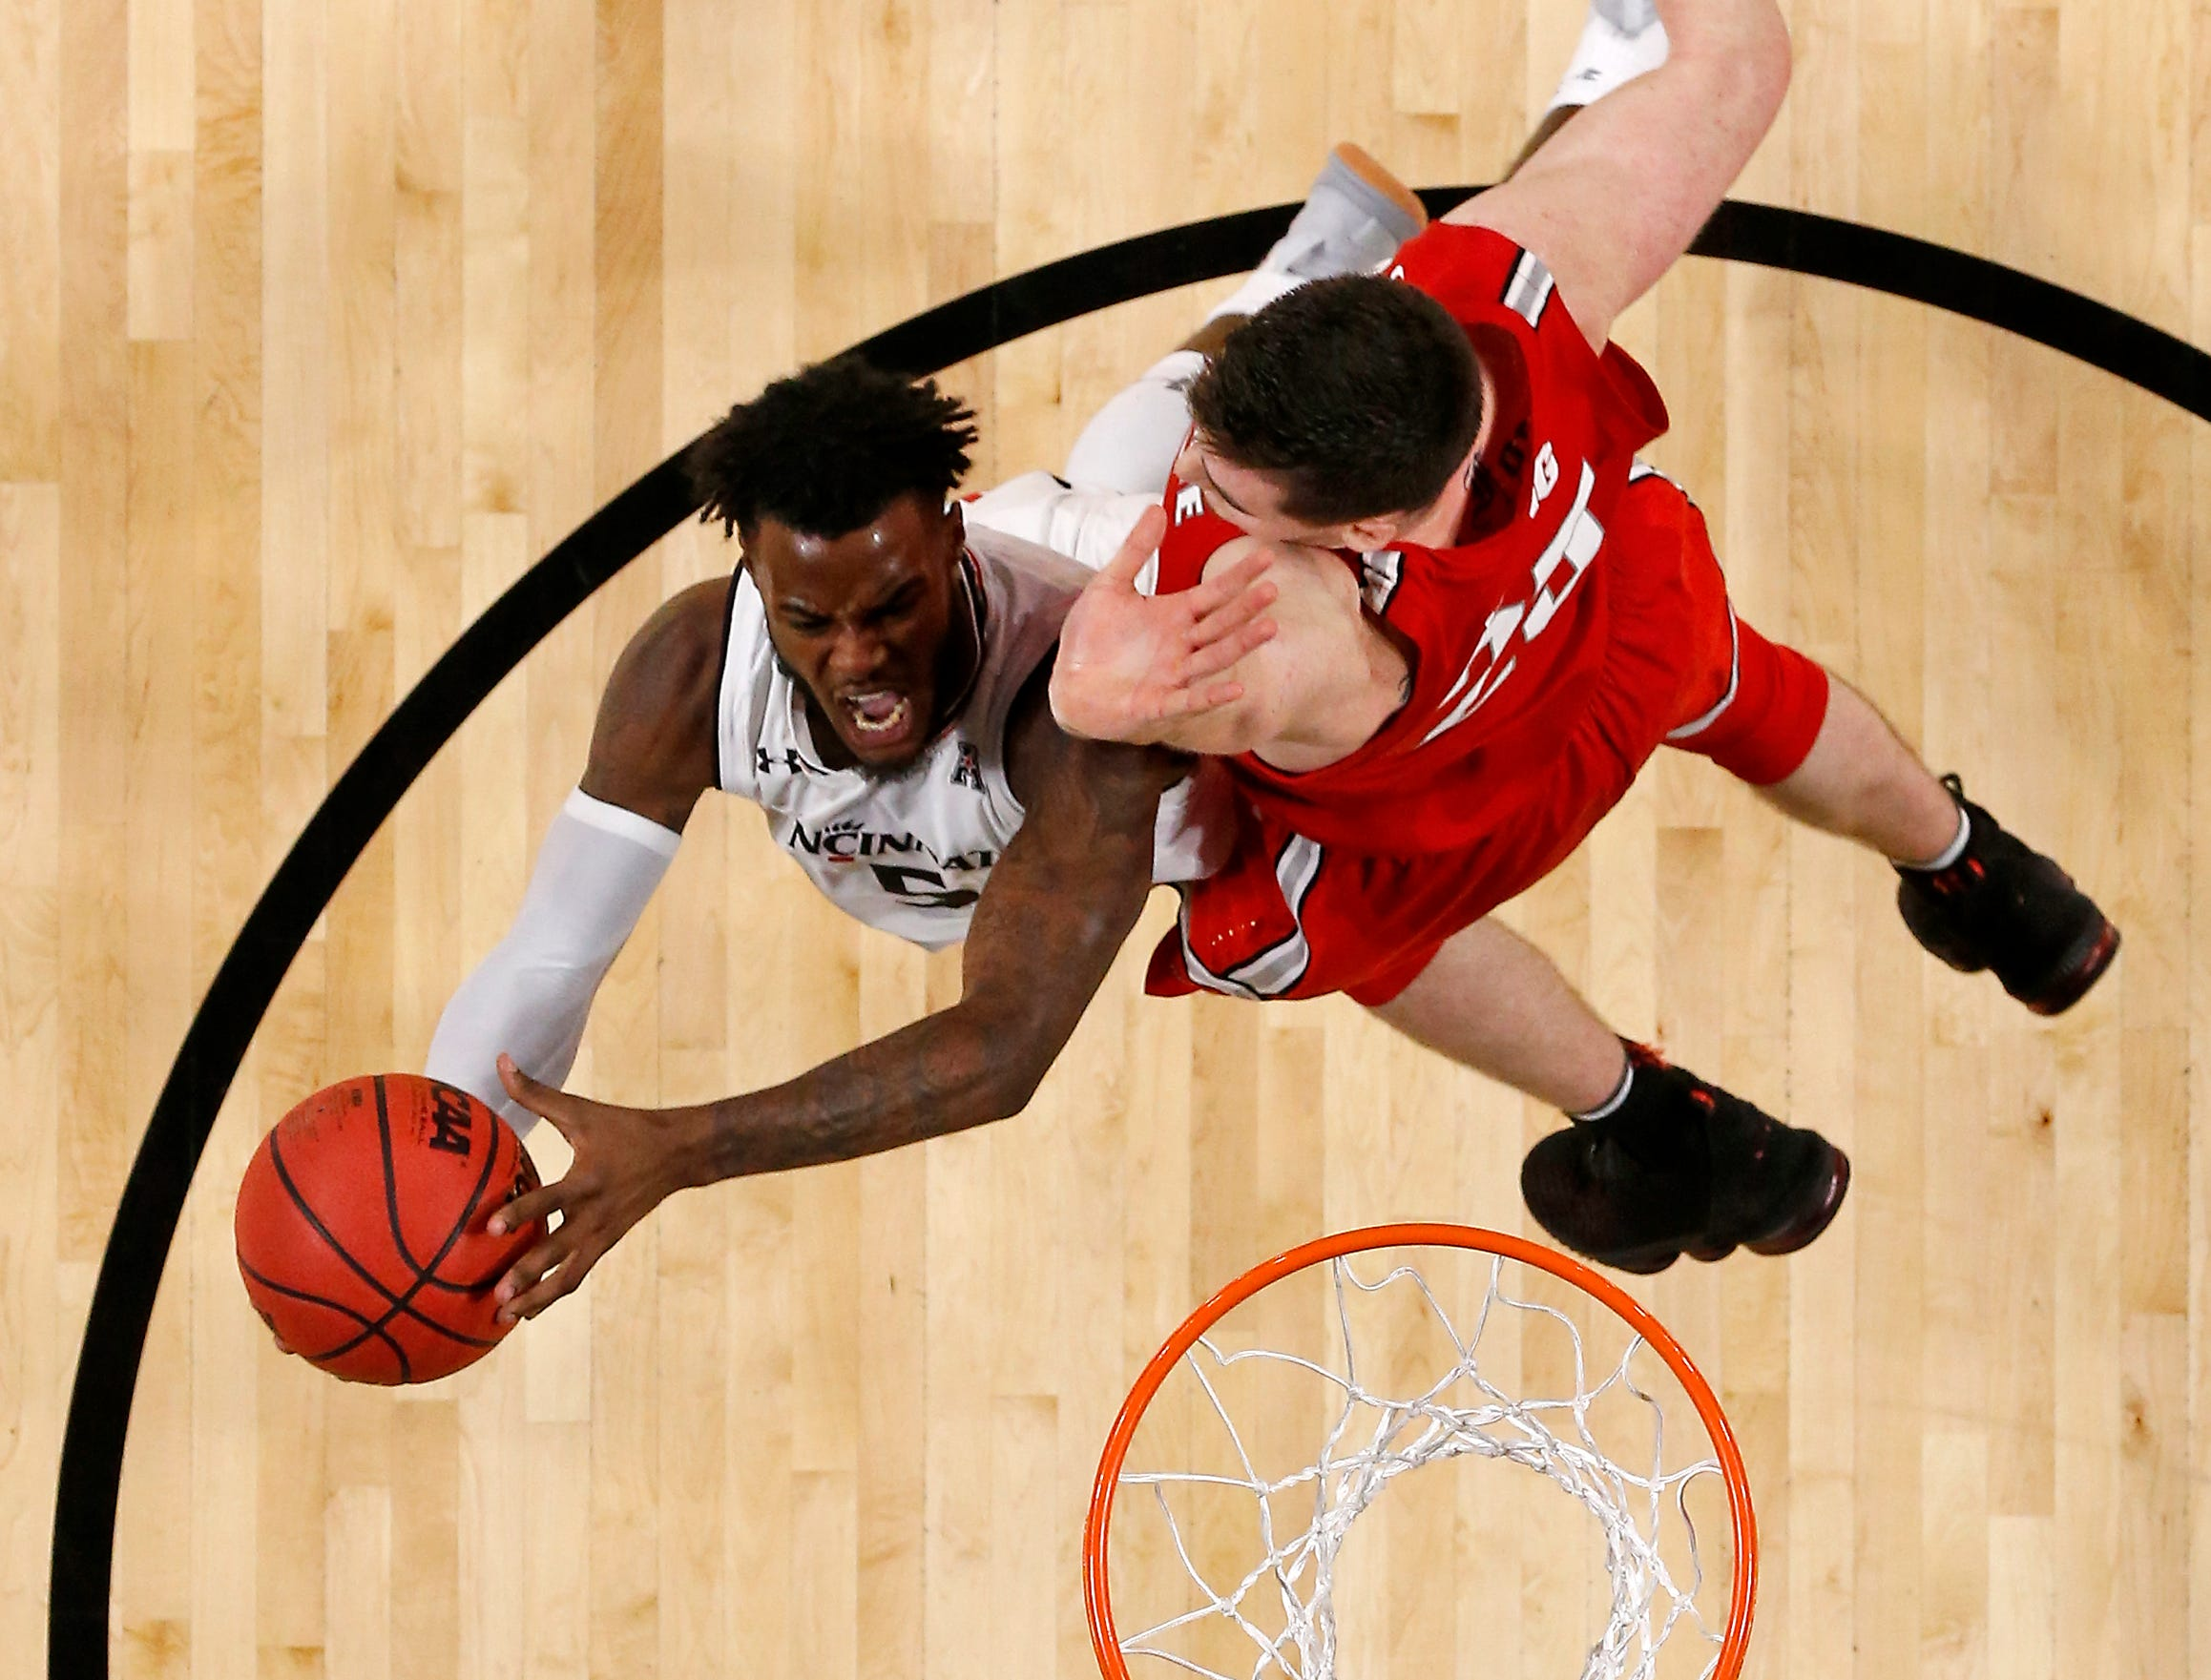 Cincinnati Bearcats guard Trevor Moore (5) shoots a layup past Ohio State Buckeyes forward Kyle Young (25) in the second half of the NCAA basketball game between the Cincinnati Bearcats and the Ohio State Buckeyes at Fifth Third Arena in Cincinnati on Wednesday, Nov. 7, 2018. The Bearcats opened the season 0-1 with a 64-56 loss the Ohio State.